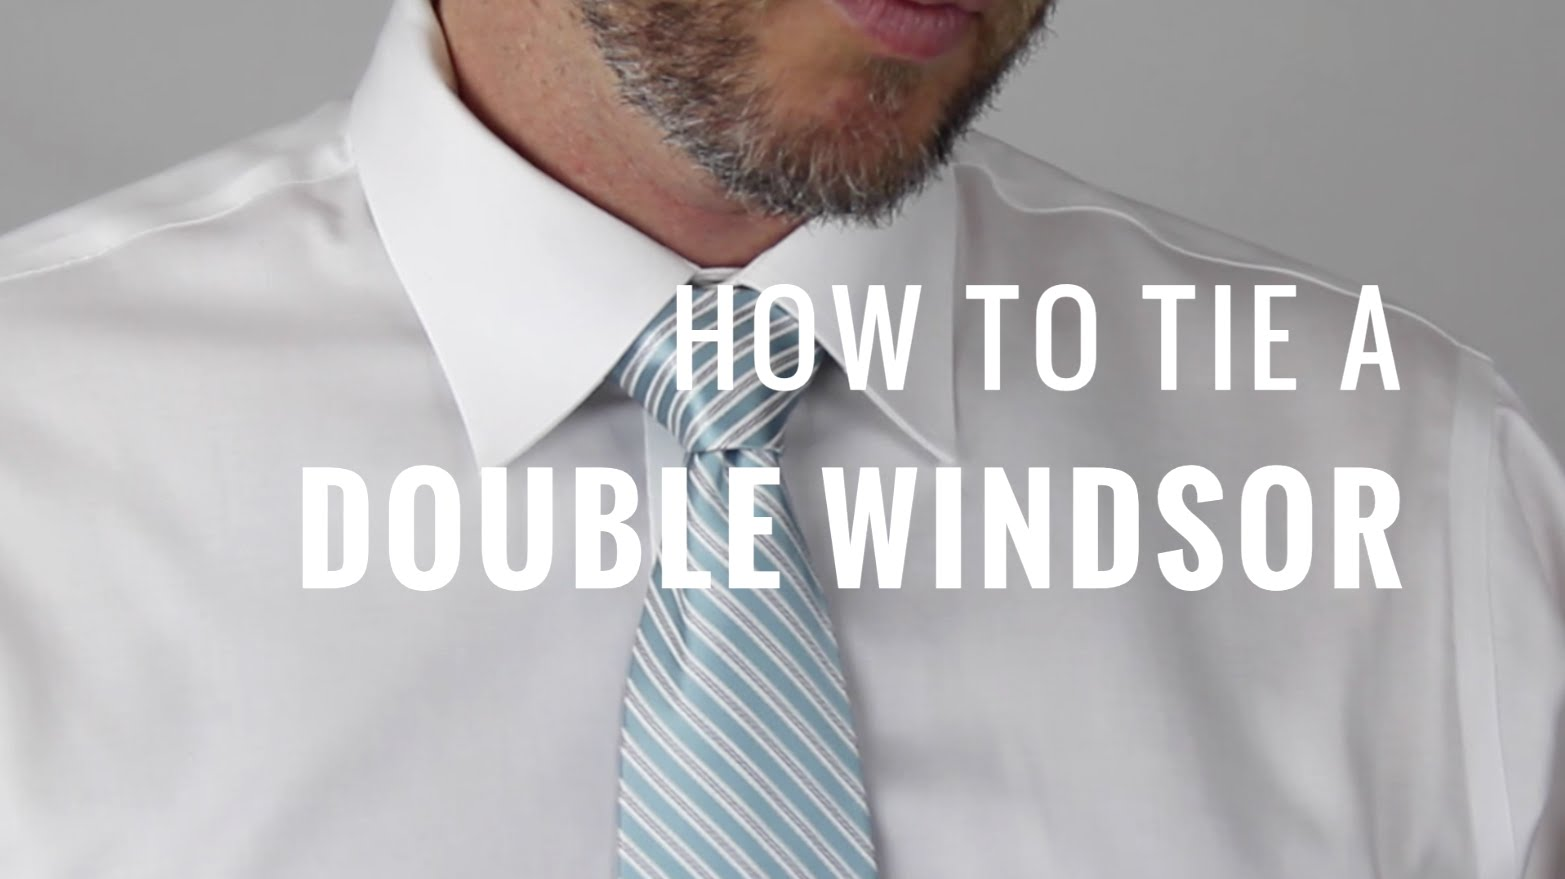 Download video how to tie a double windsor knot neckties bow tie a double windsor knot with help from a design and fashion expert in this free video ccuart Choice Image